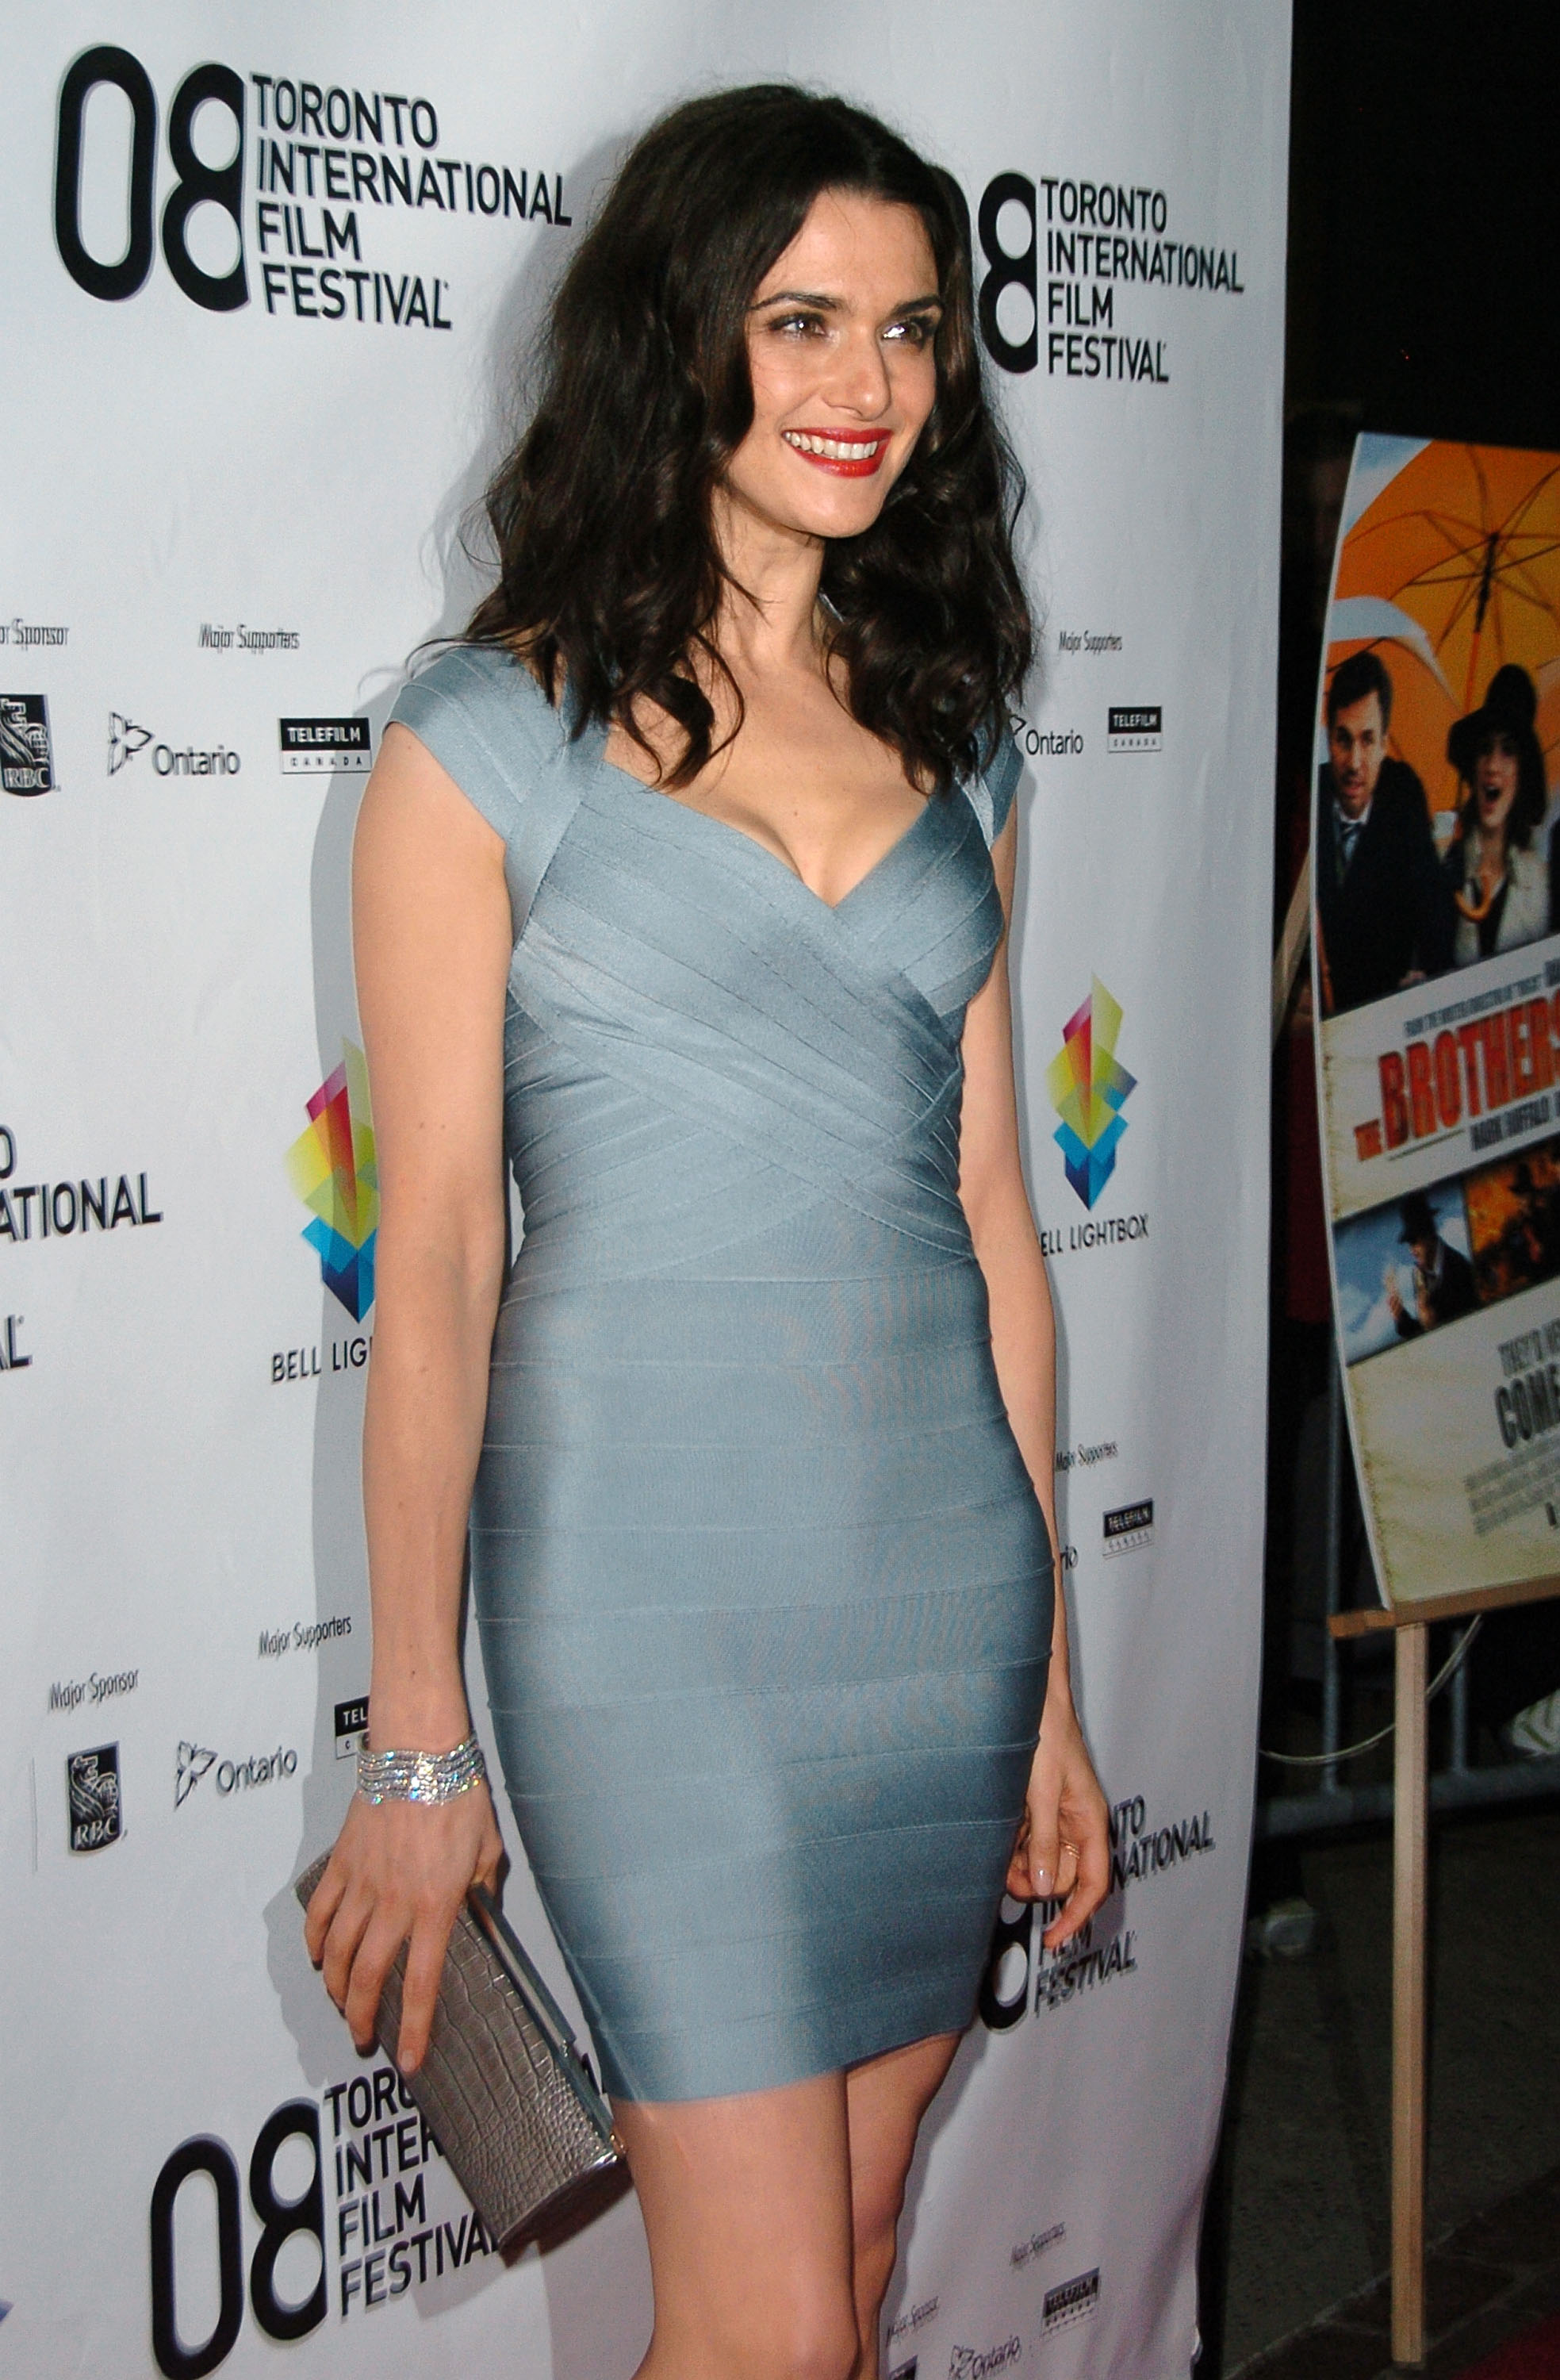 26535_Celebutopia-Rachel_Weisz-The_Brothers_Bloom_premiere_during_the_2008_Toronto_International_Film_Festival-01_122_150lo.jpg